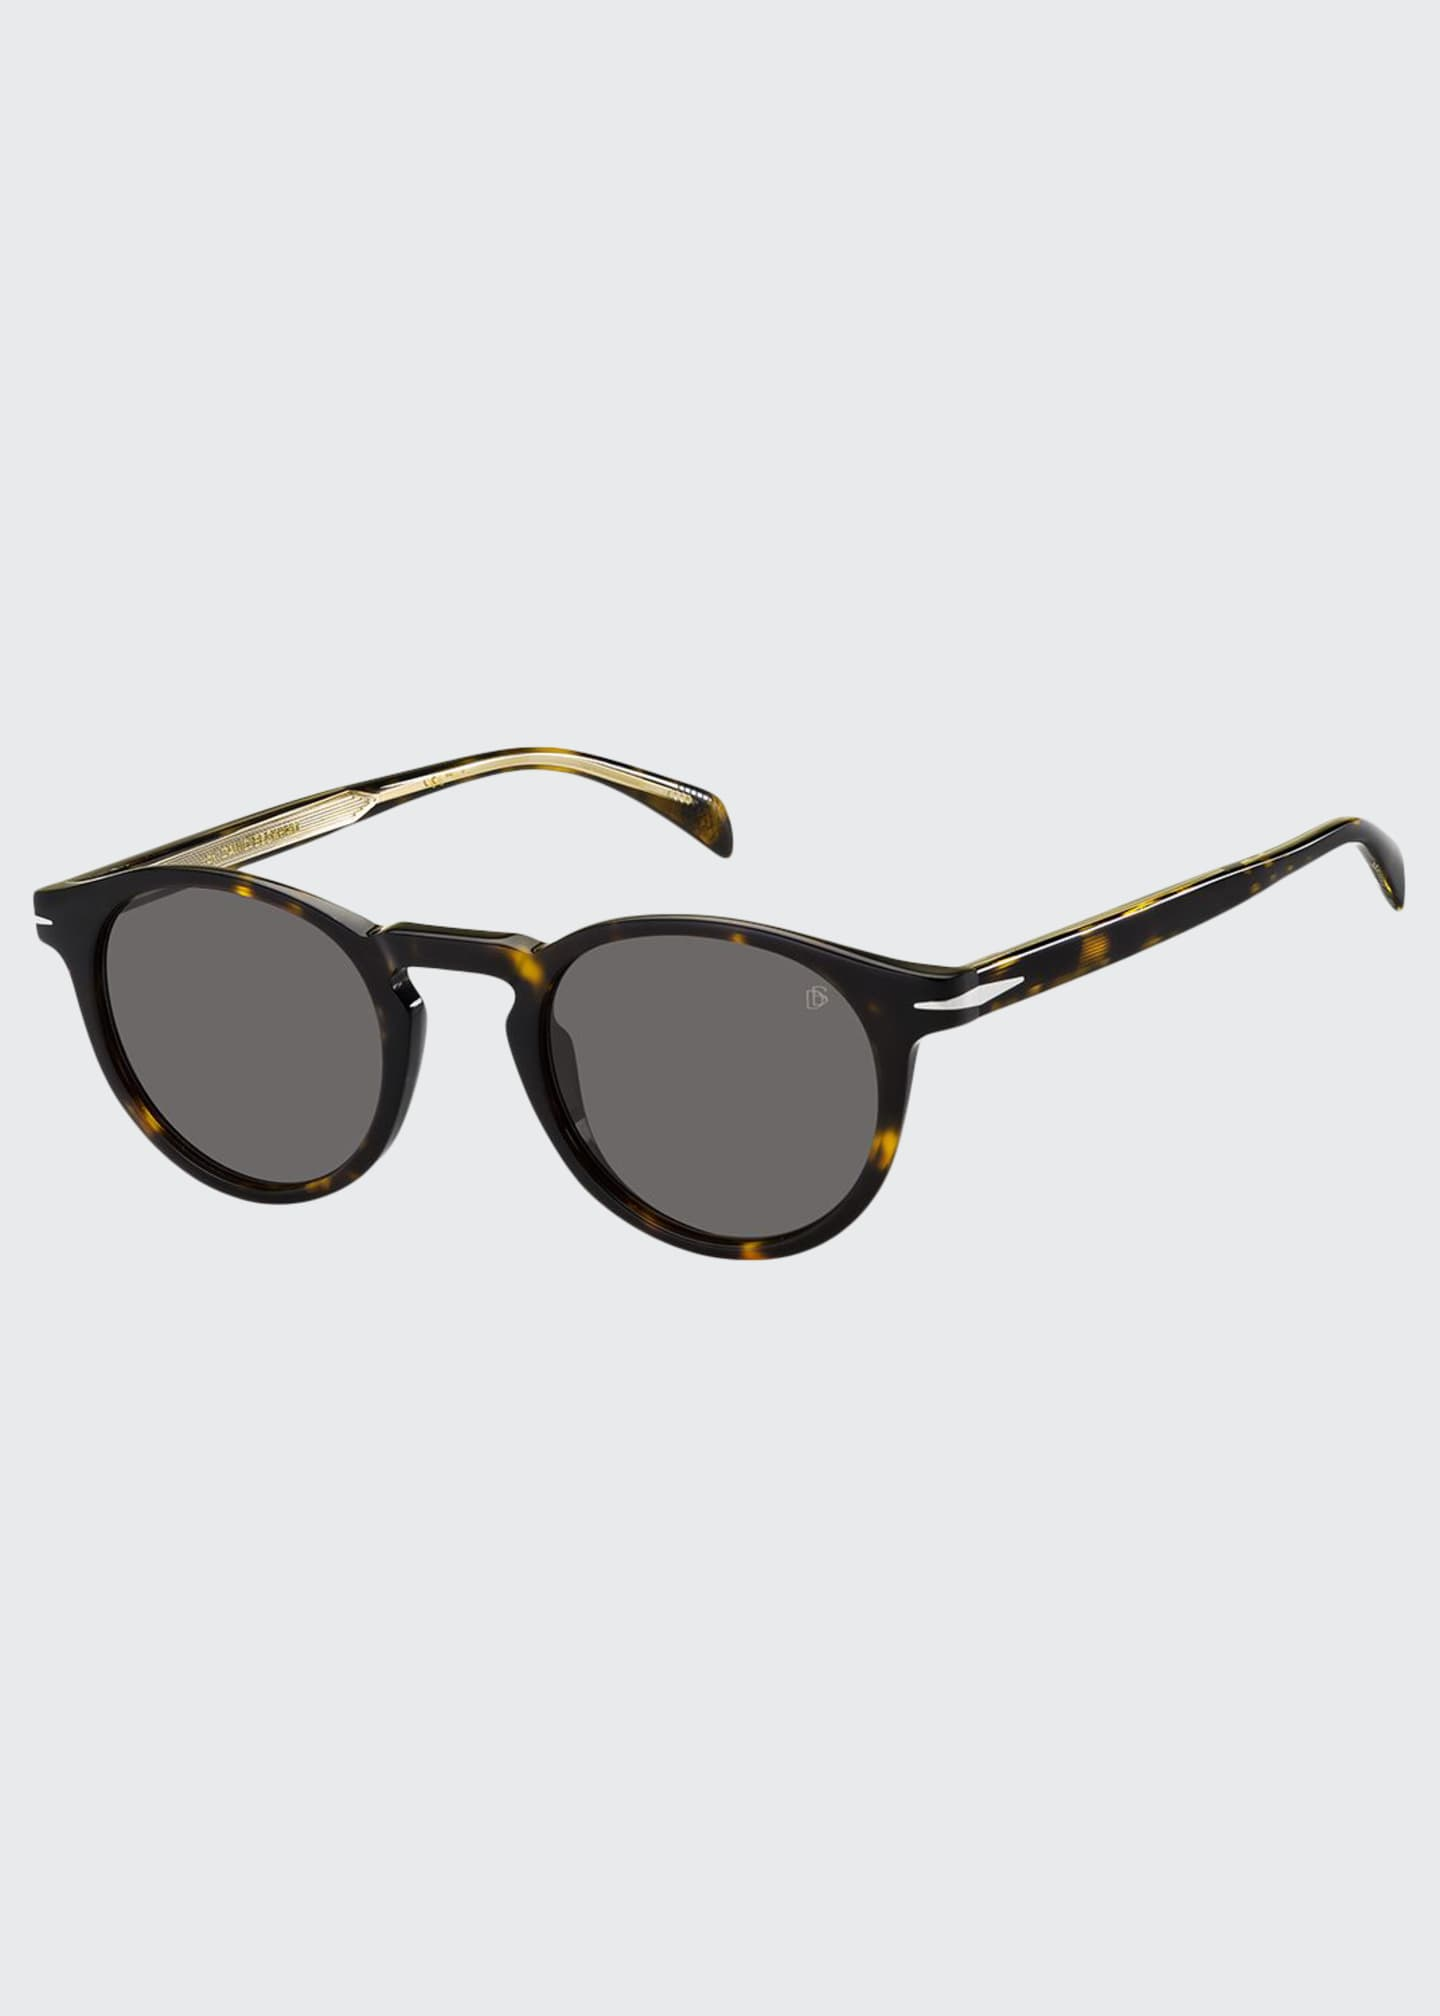 Image 1 of 1: Men's Round Acetate Sunglasses